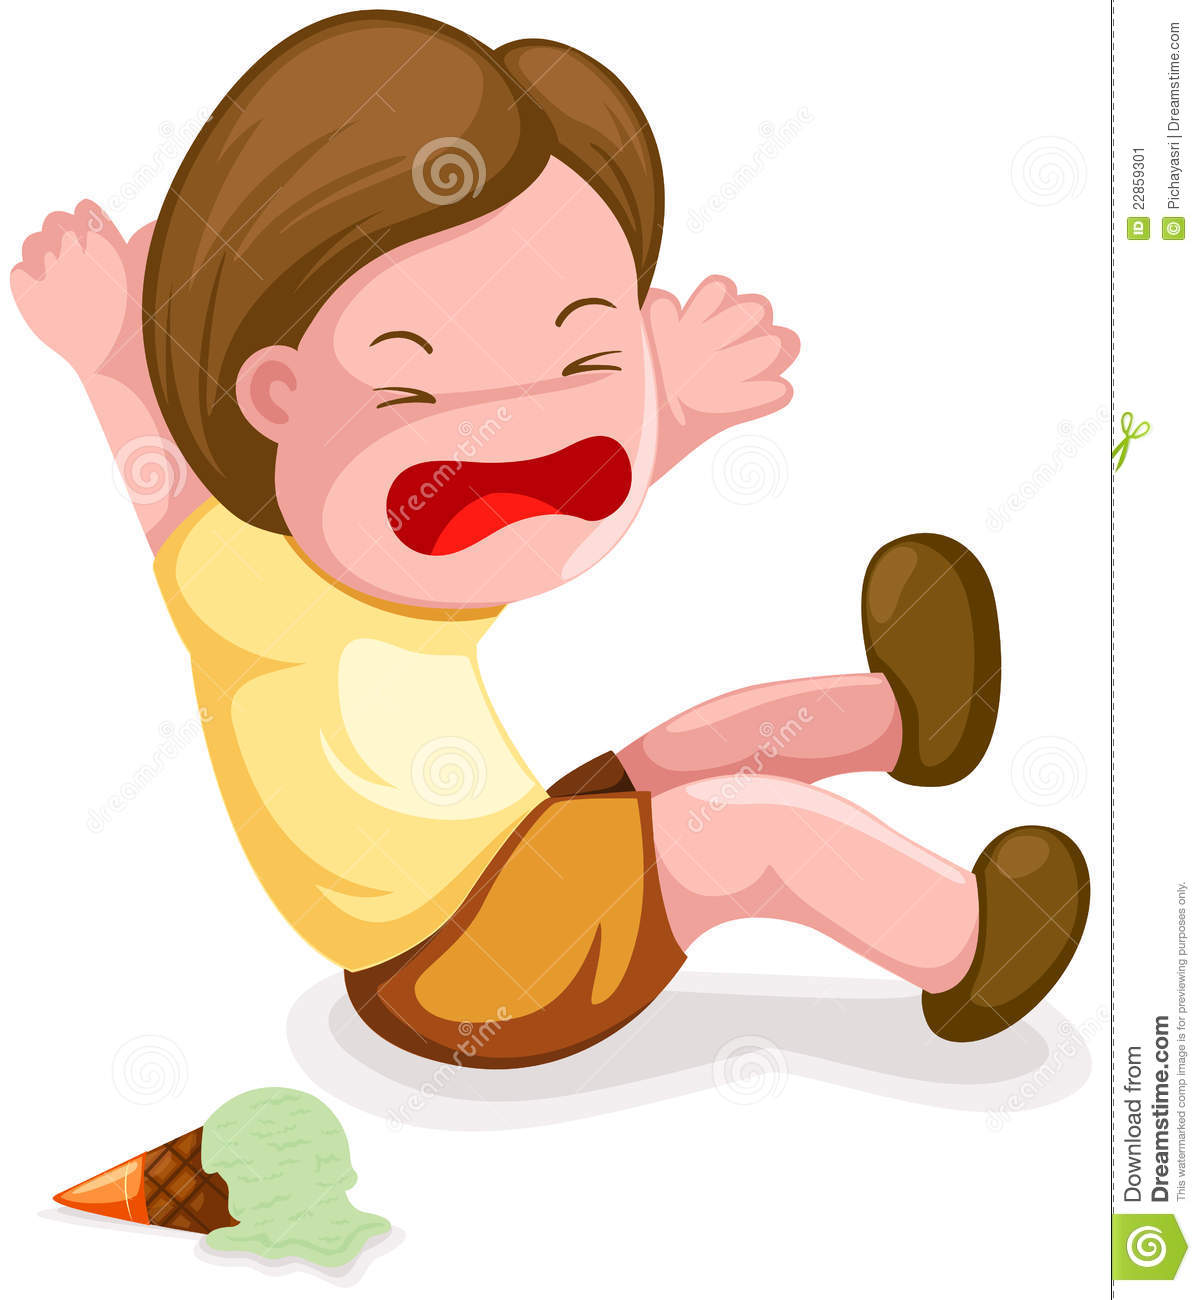 Galleries Related  Falling Clipart  Fall Down Stairs  Fall Down